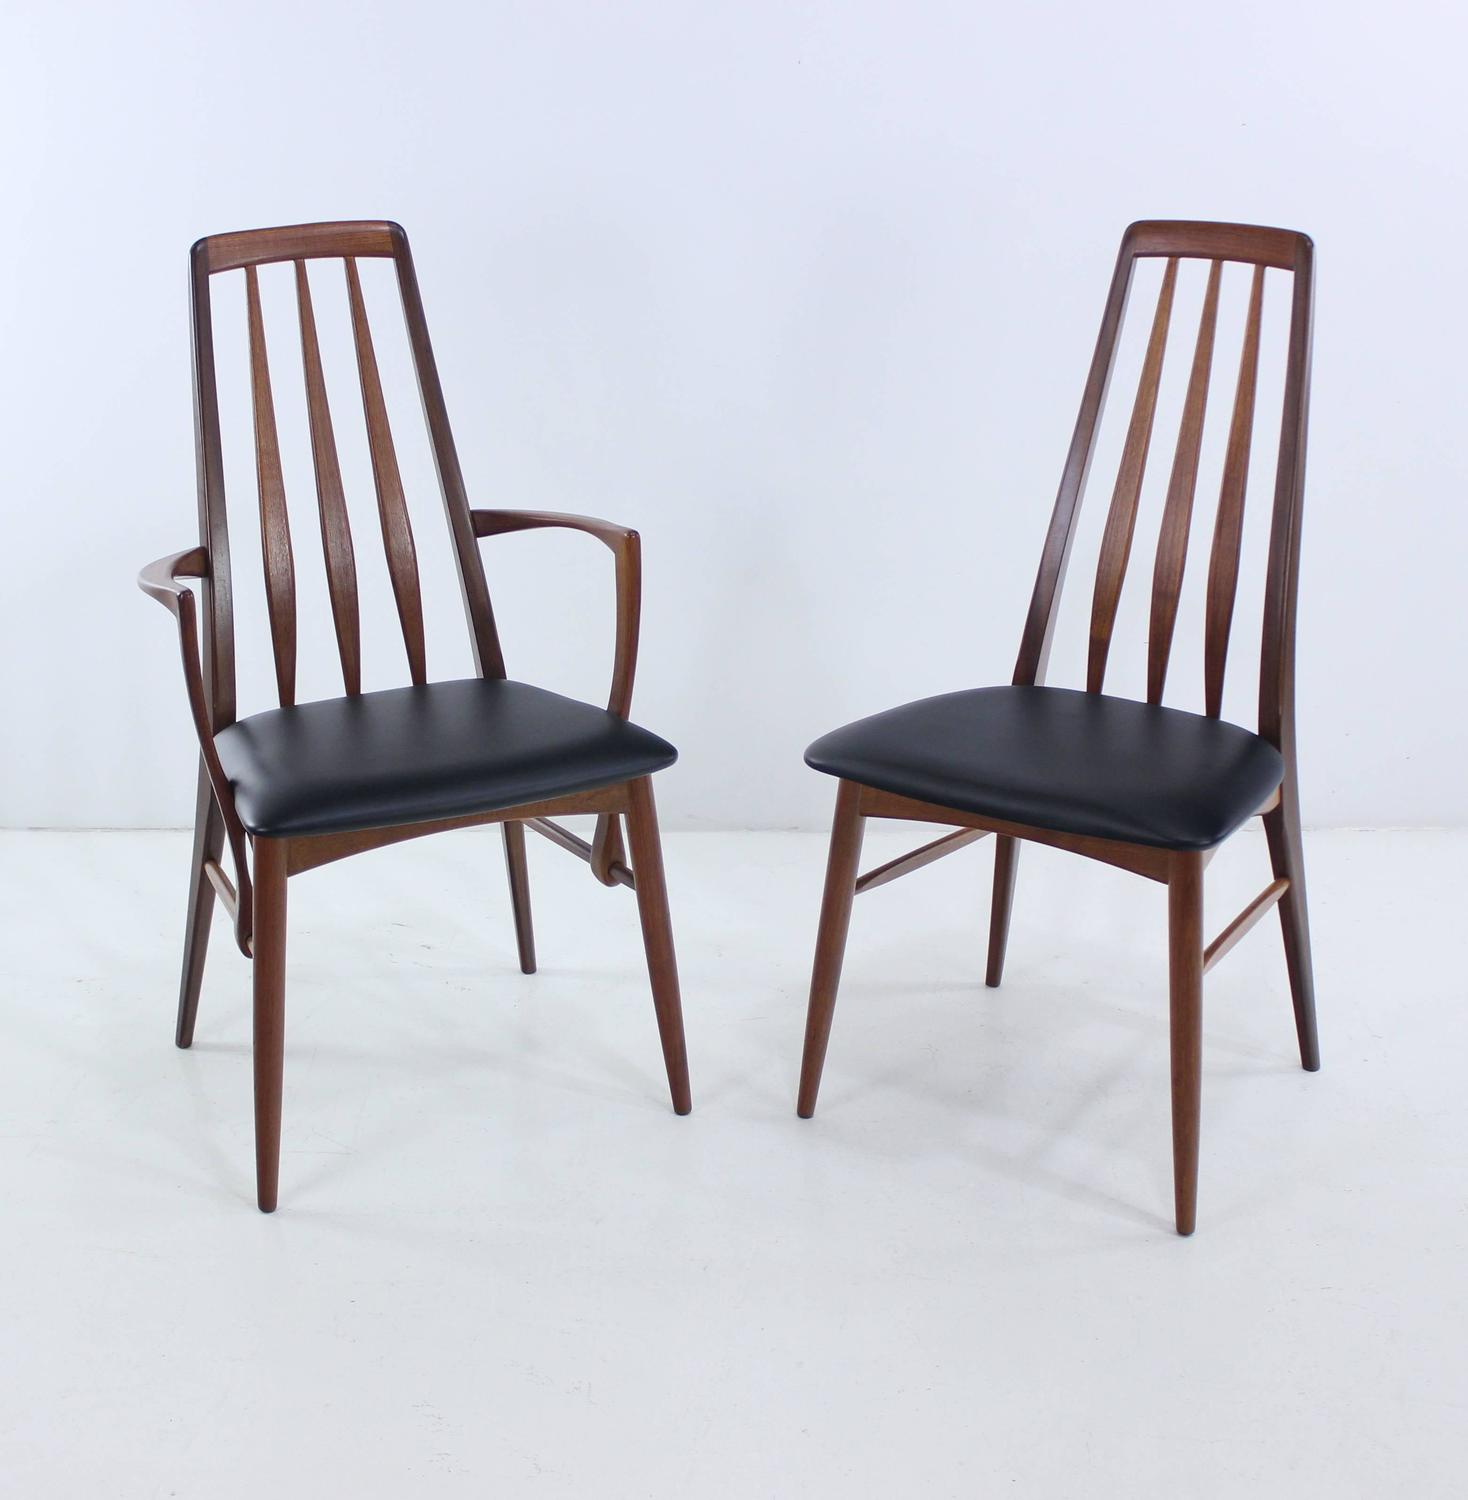 high back dining chairs designed by niels kofoed for sale at 1stdibs